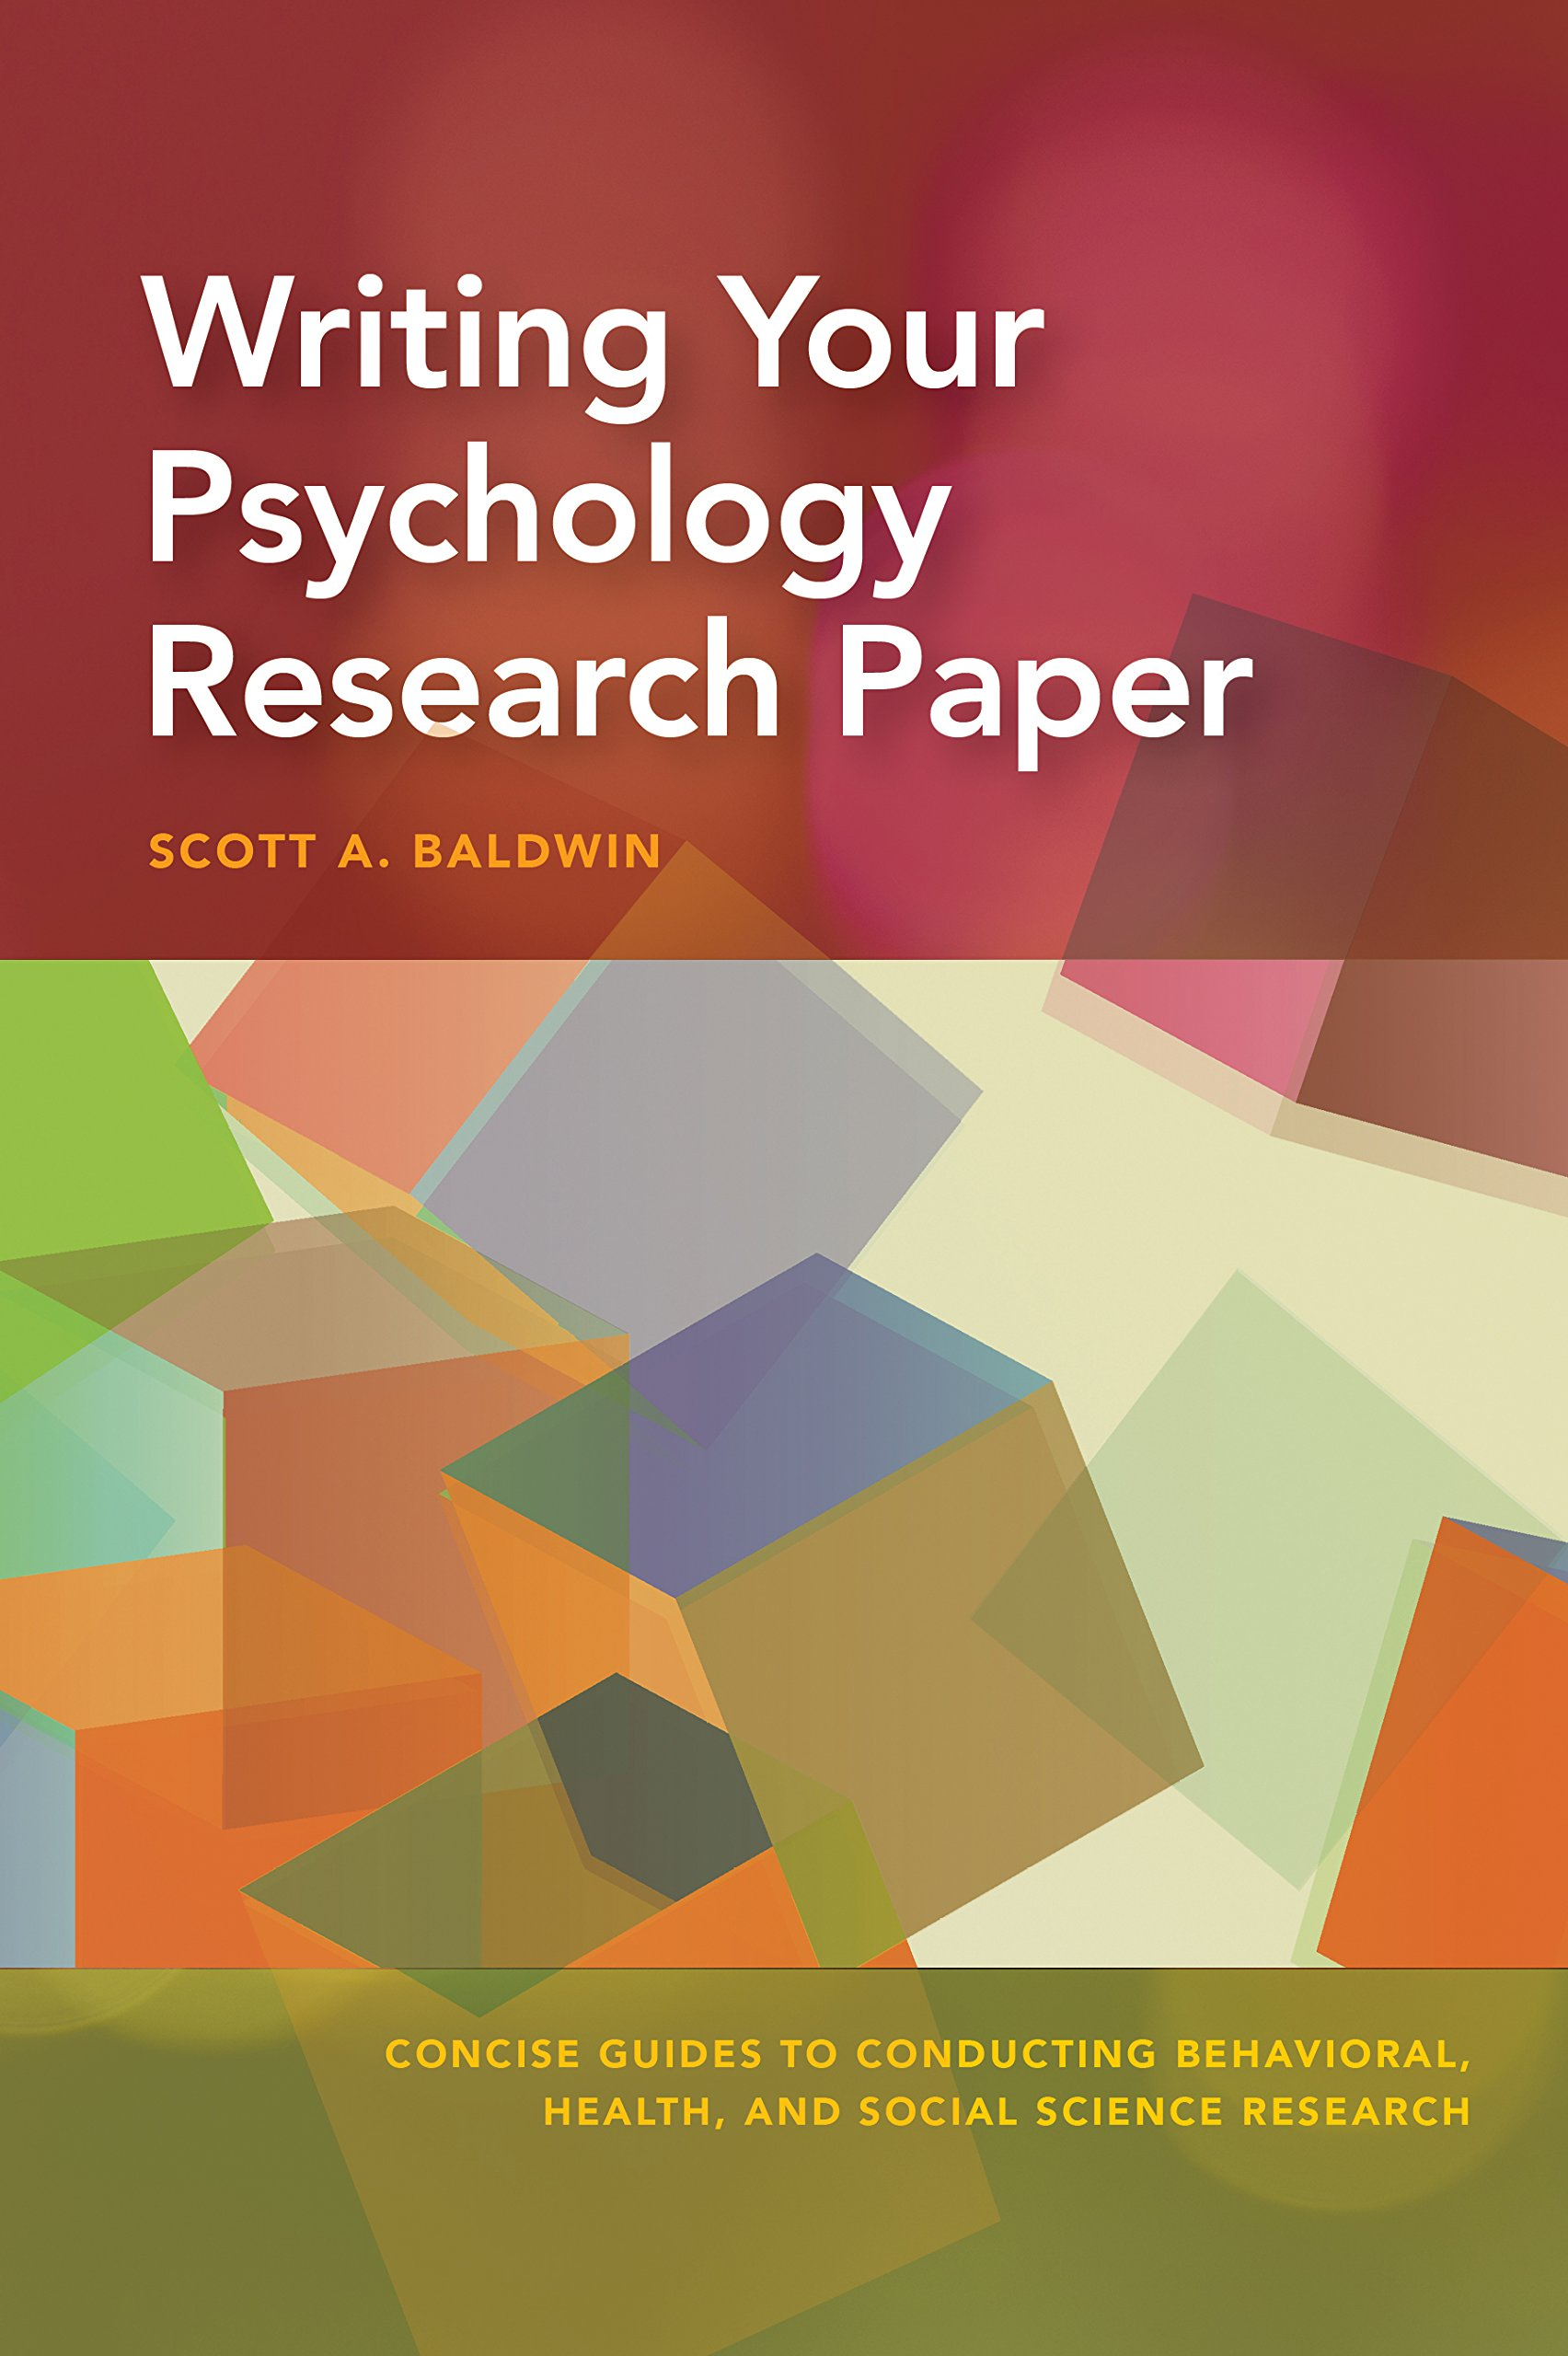 010 Psychology Research Paper On Anxiety Marvelous Topics Topic